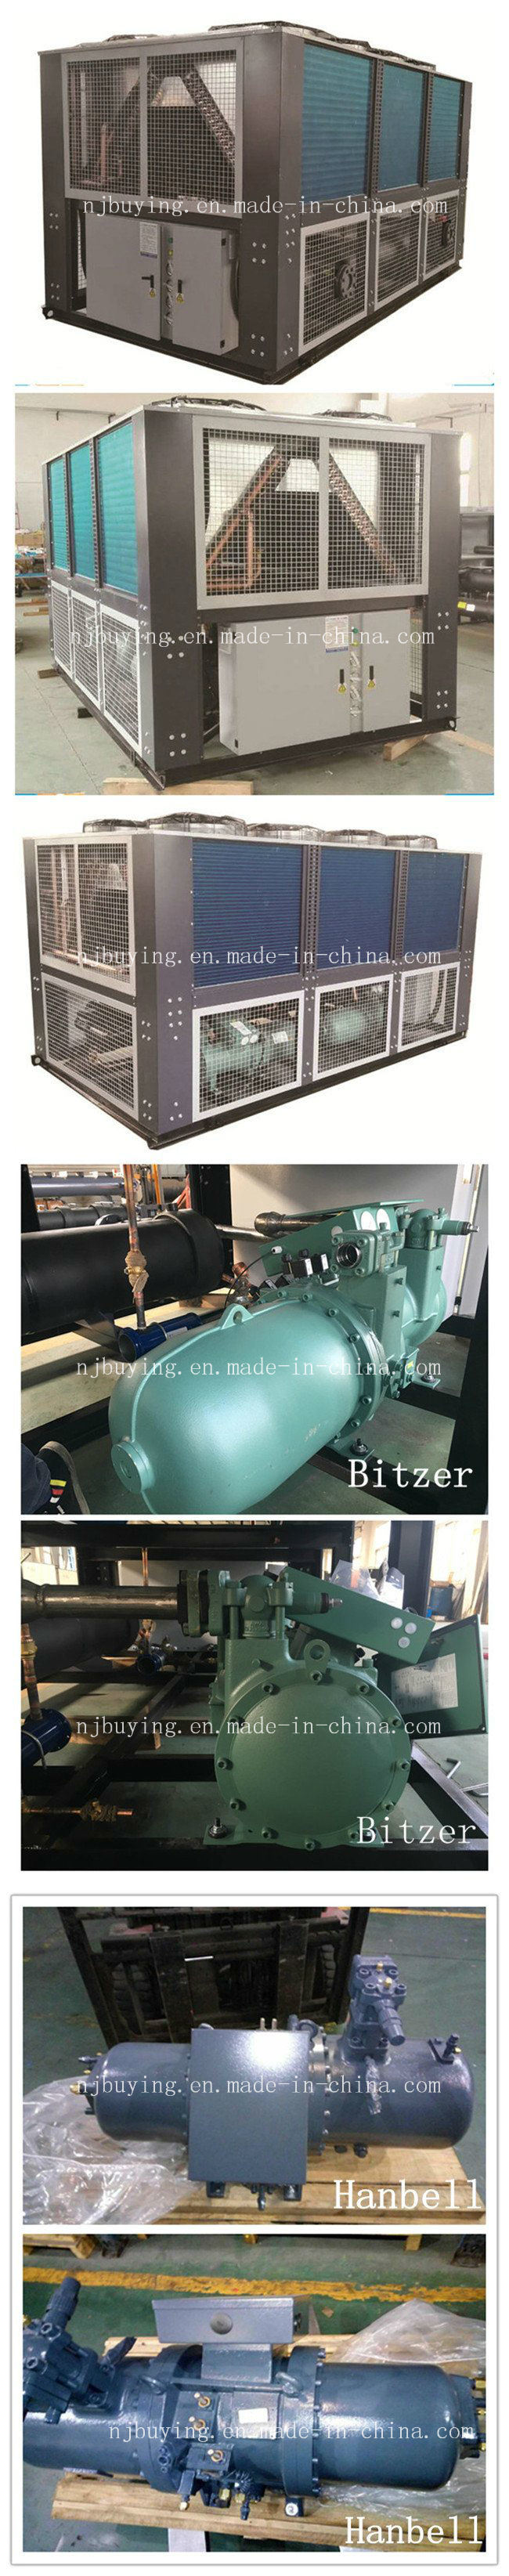 Refrigeration Air Cooled Screw Water Chiller for Chemical / Plastic Industry